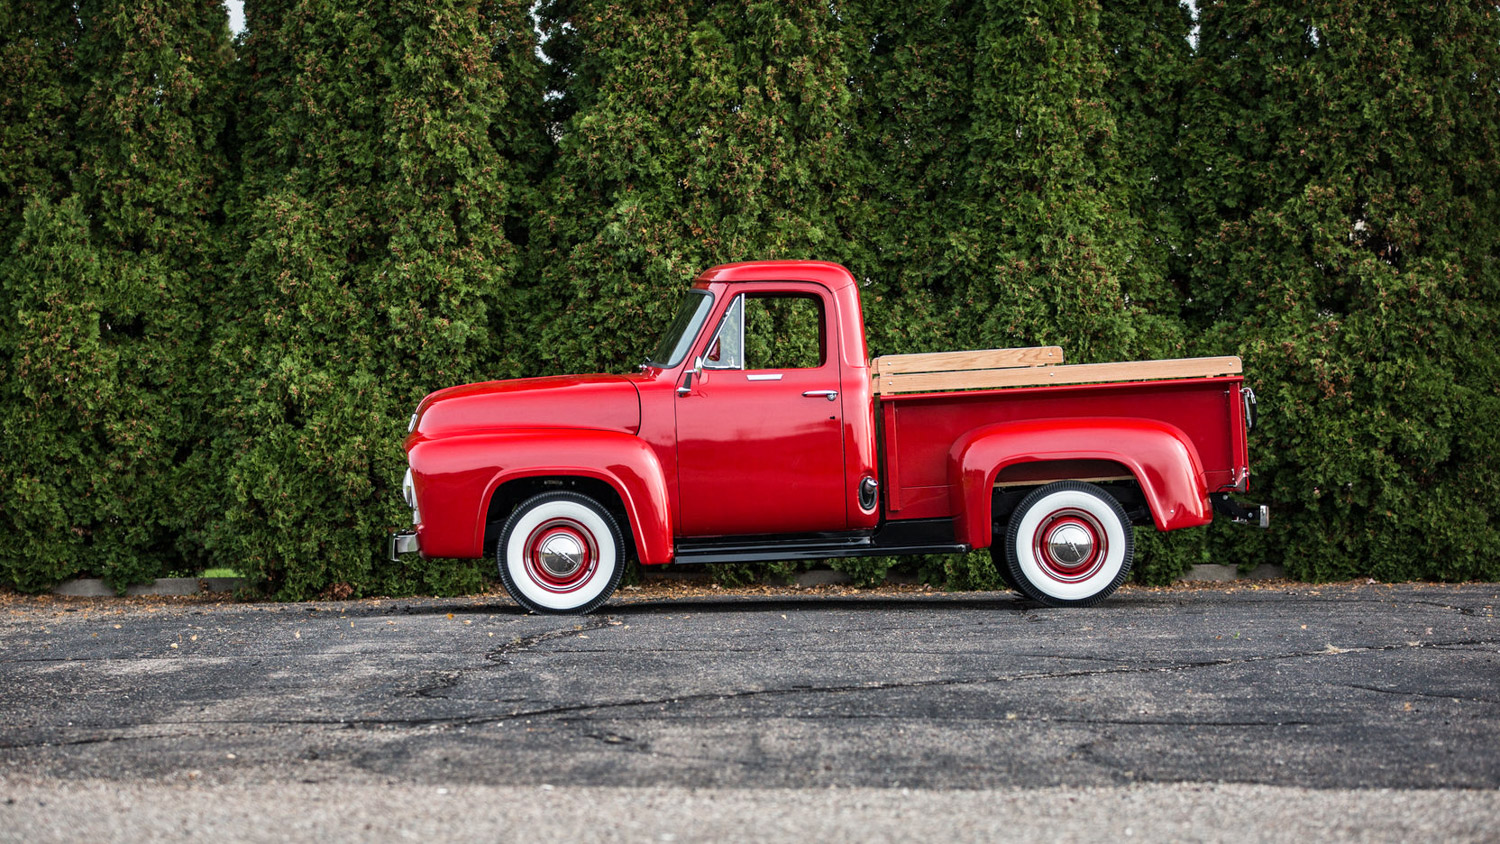 1955 Ford F100 side